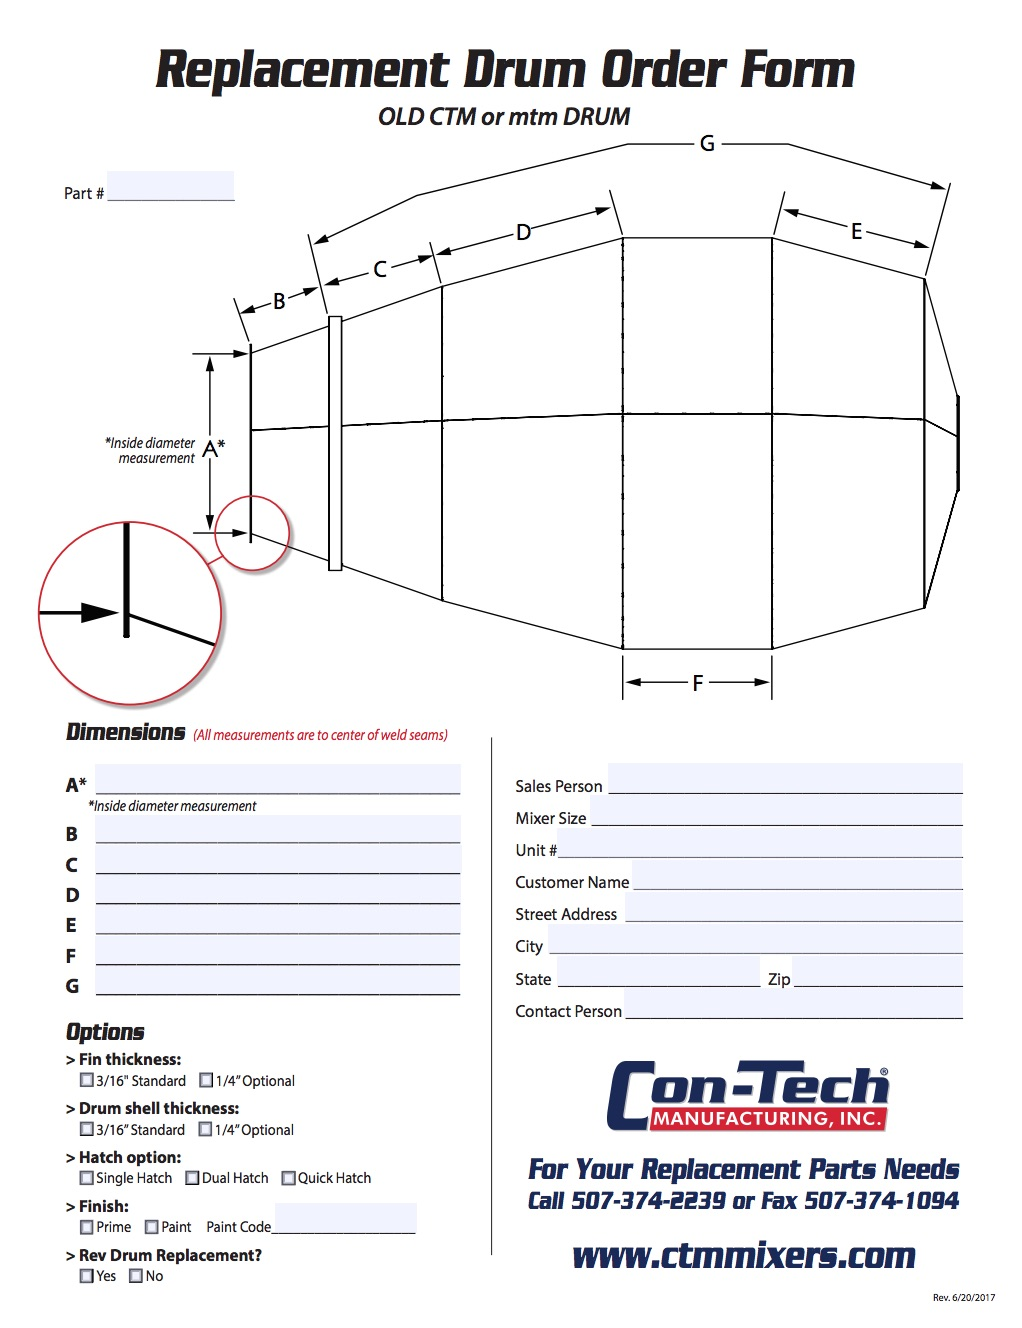 HP Drum Replacement Order Form